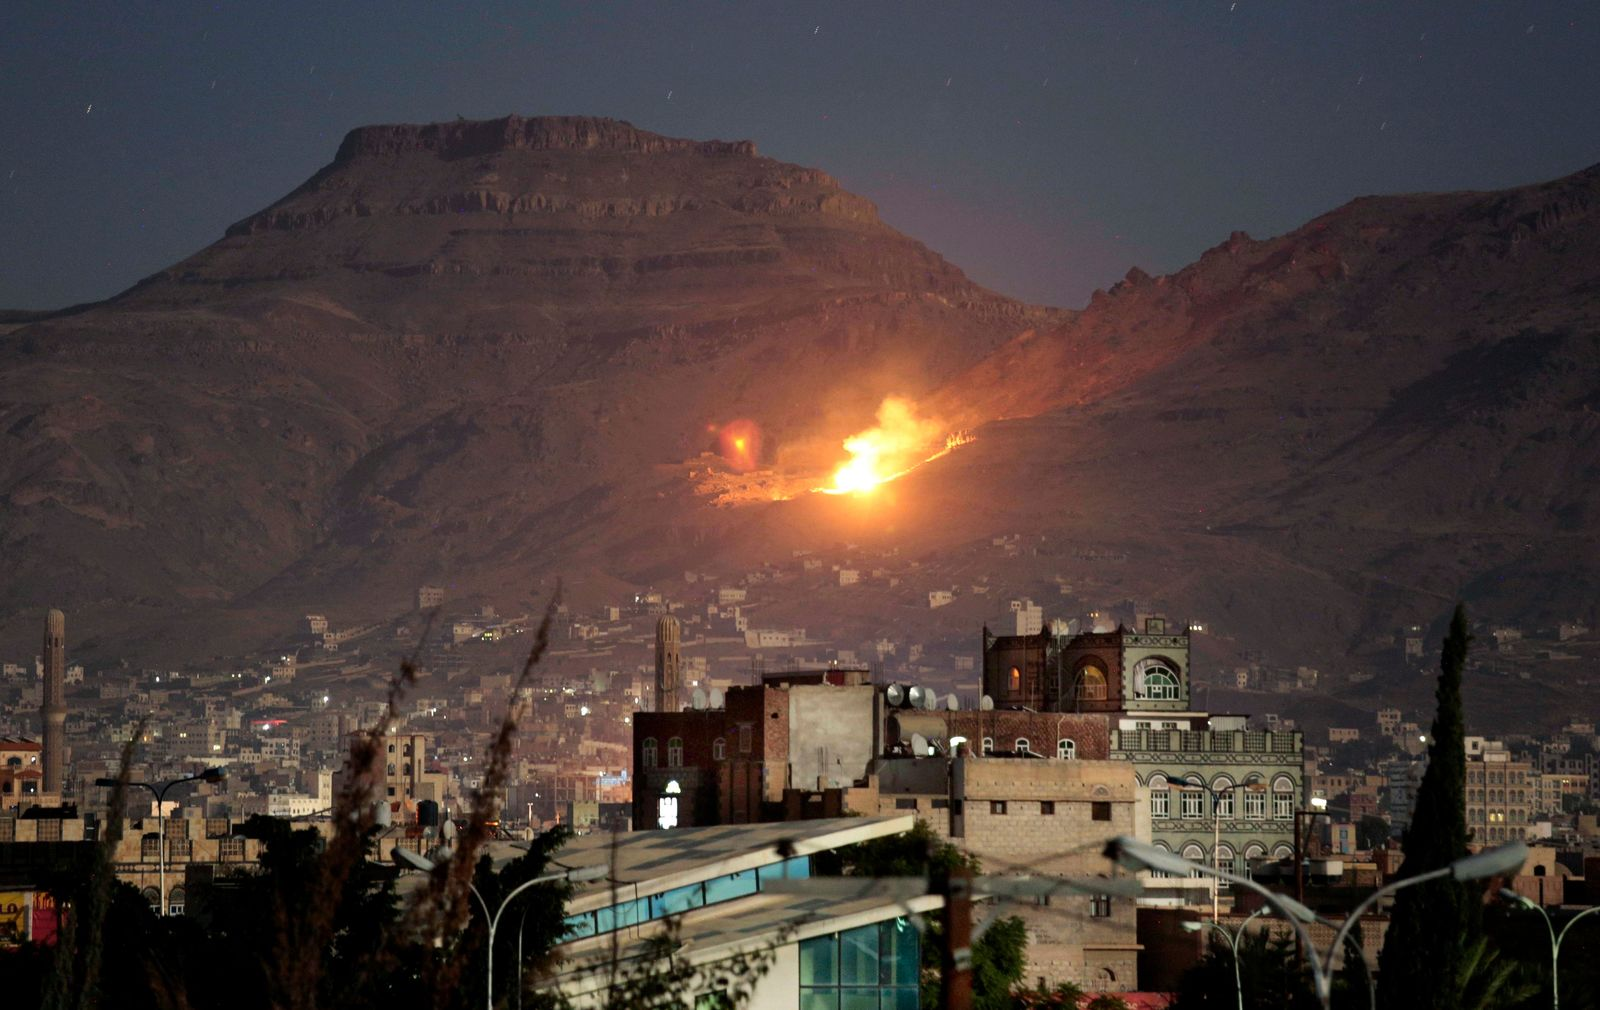 FILE - In this Oct. 14, 2016 file photo, fire and smoke rise after a Saudi-led airstrike hit a site believed to be one of the largest weapons depots on the outskirts of Yemen's capital, Sanaa. . (AP Photo/Hani Mohammed, File)